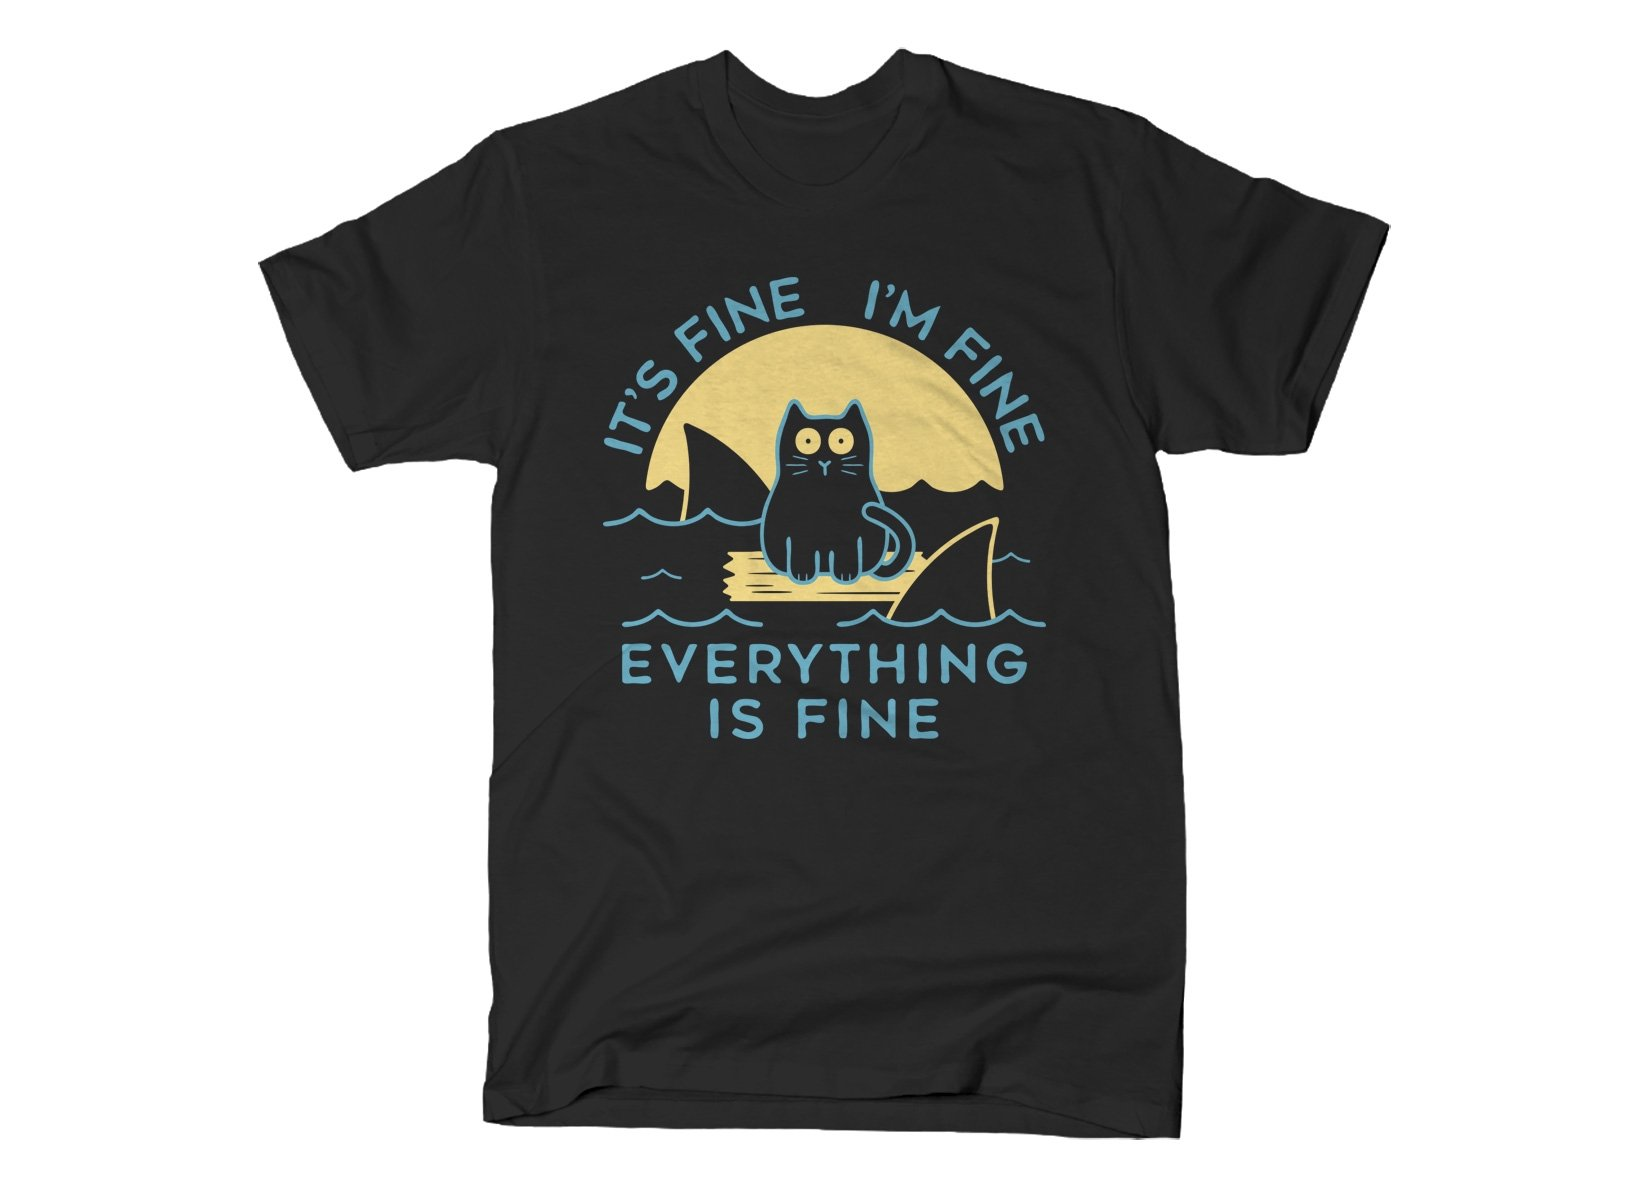 It's Fine I'm Fine Everything Is Fine on Mens T-Shirt